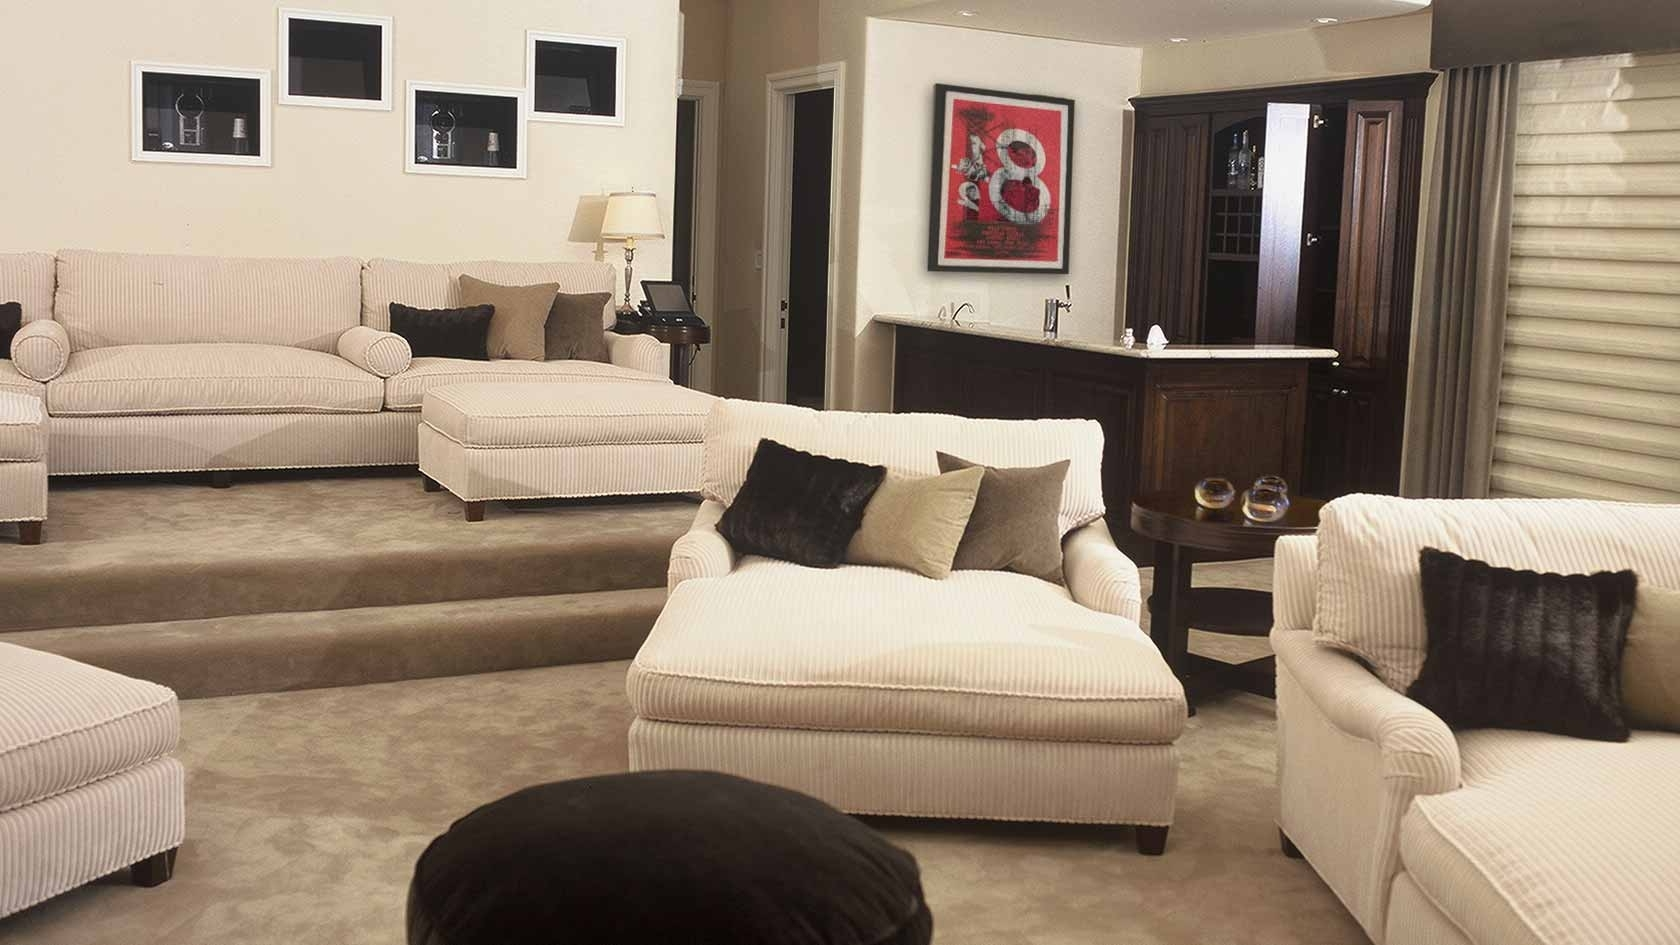 Preferred Oversized Chaise Lounges Intended For Furniture: Oversized Chaise Lounge Indoor Design With Brown Rug (View 13 of 15)